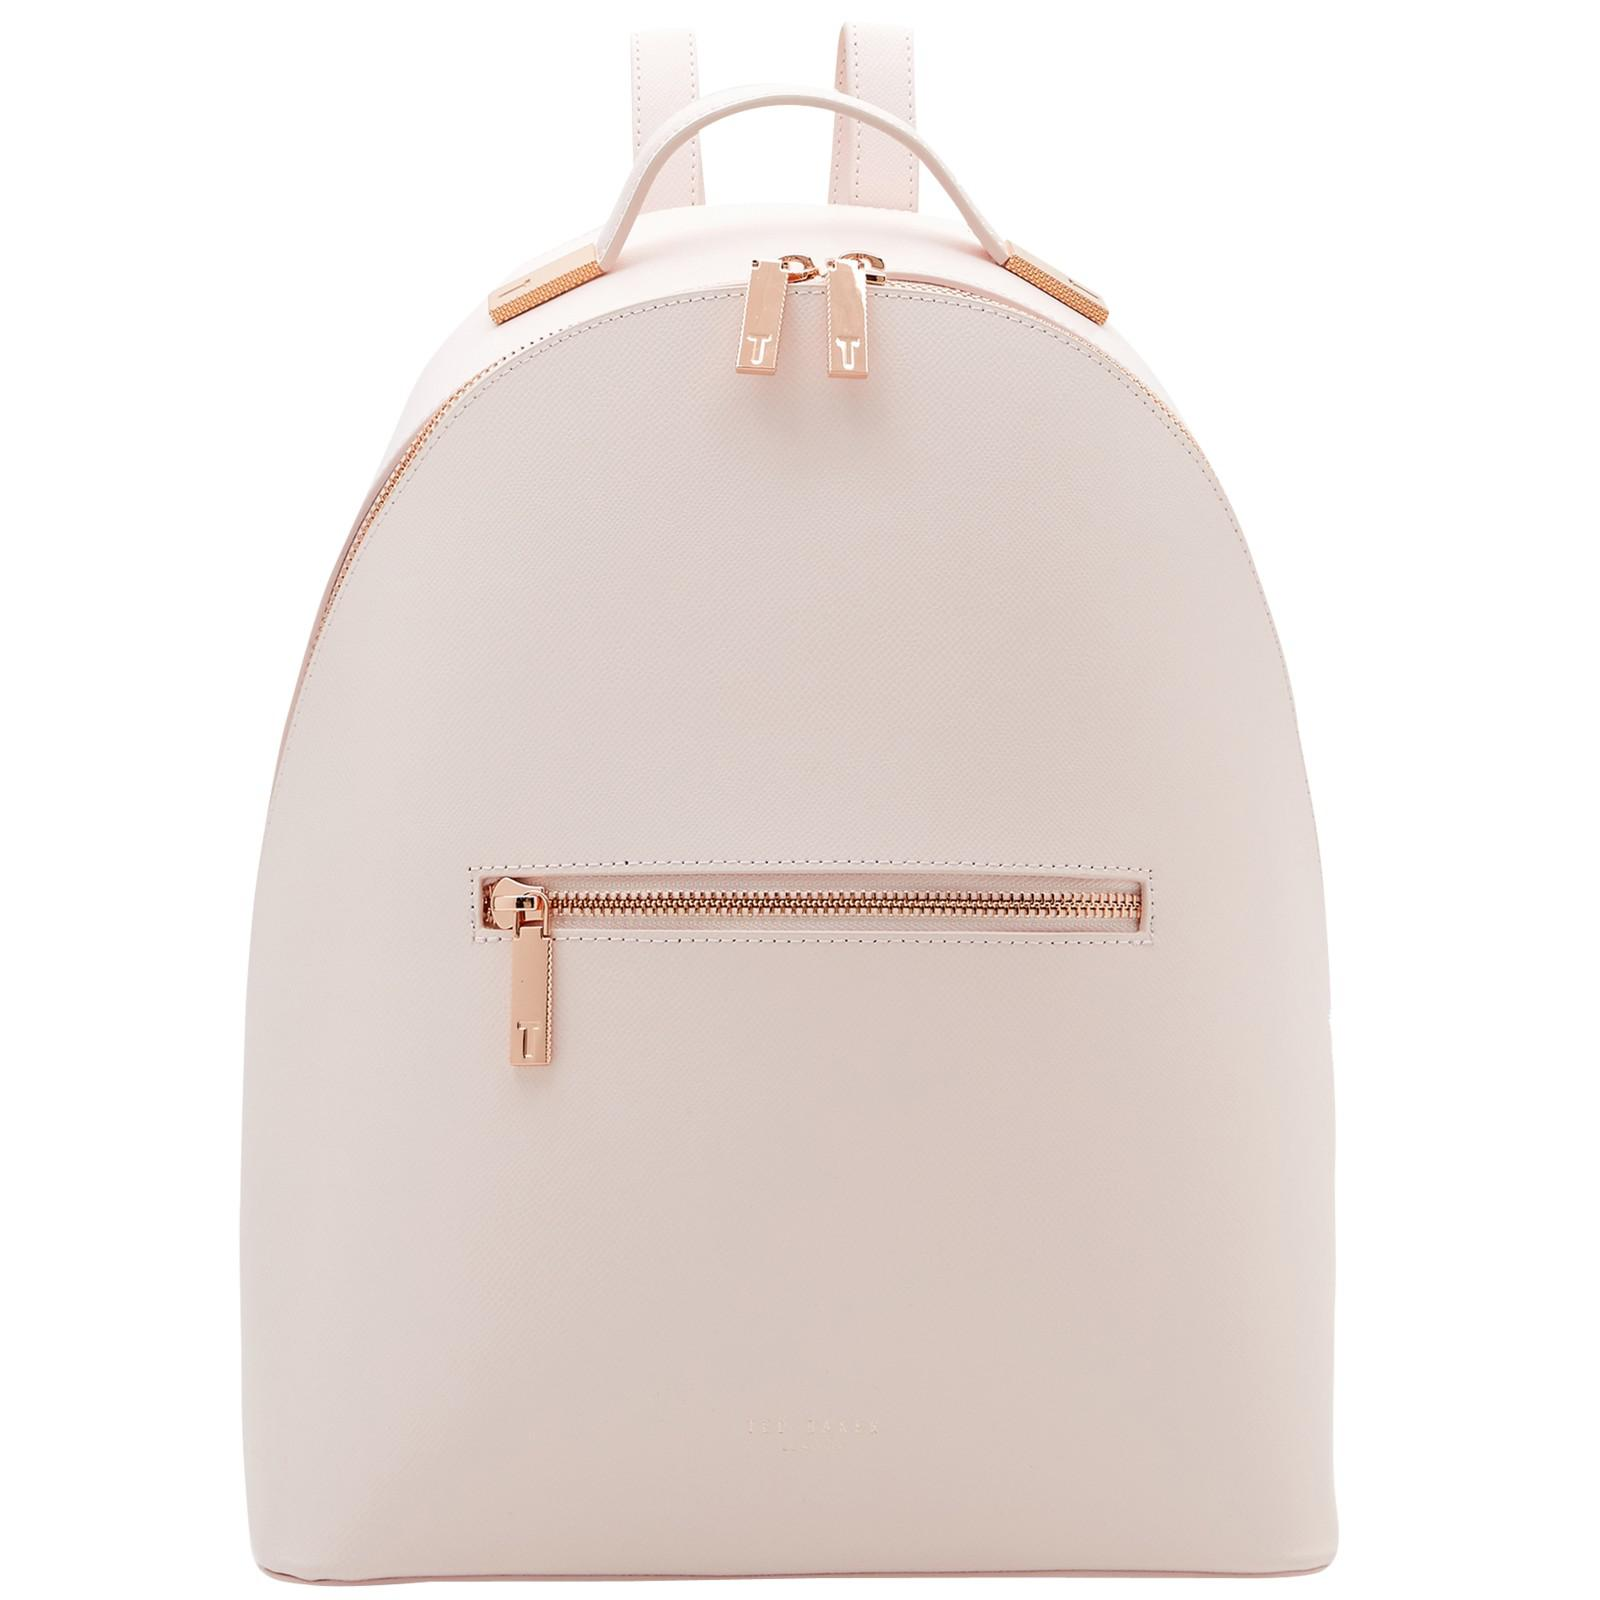 5c10c7273 Ted Baker Jarvis Leather Backpack - Lyst